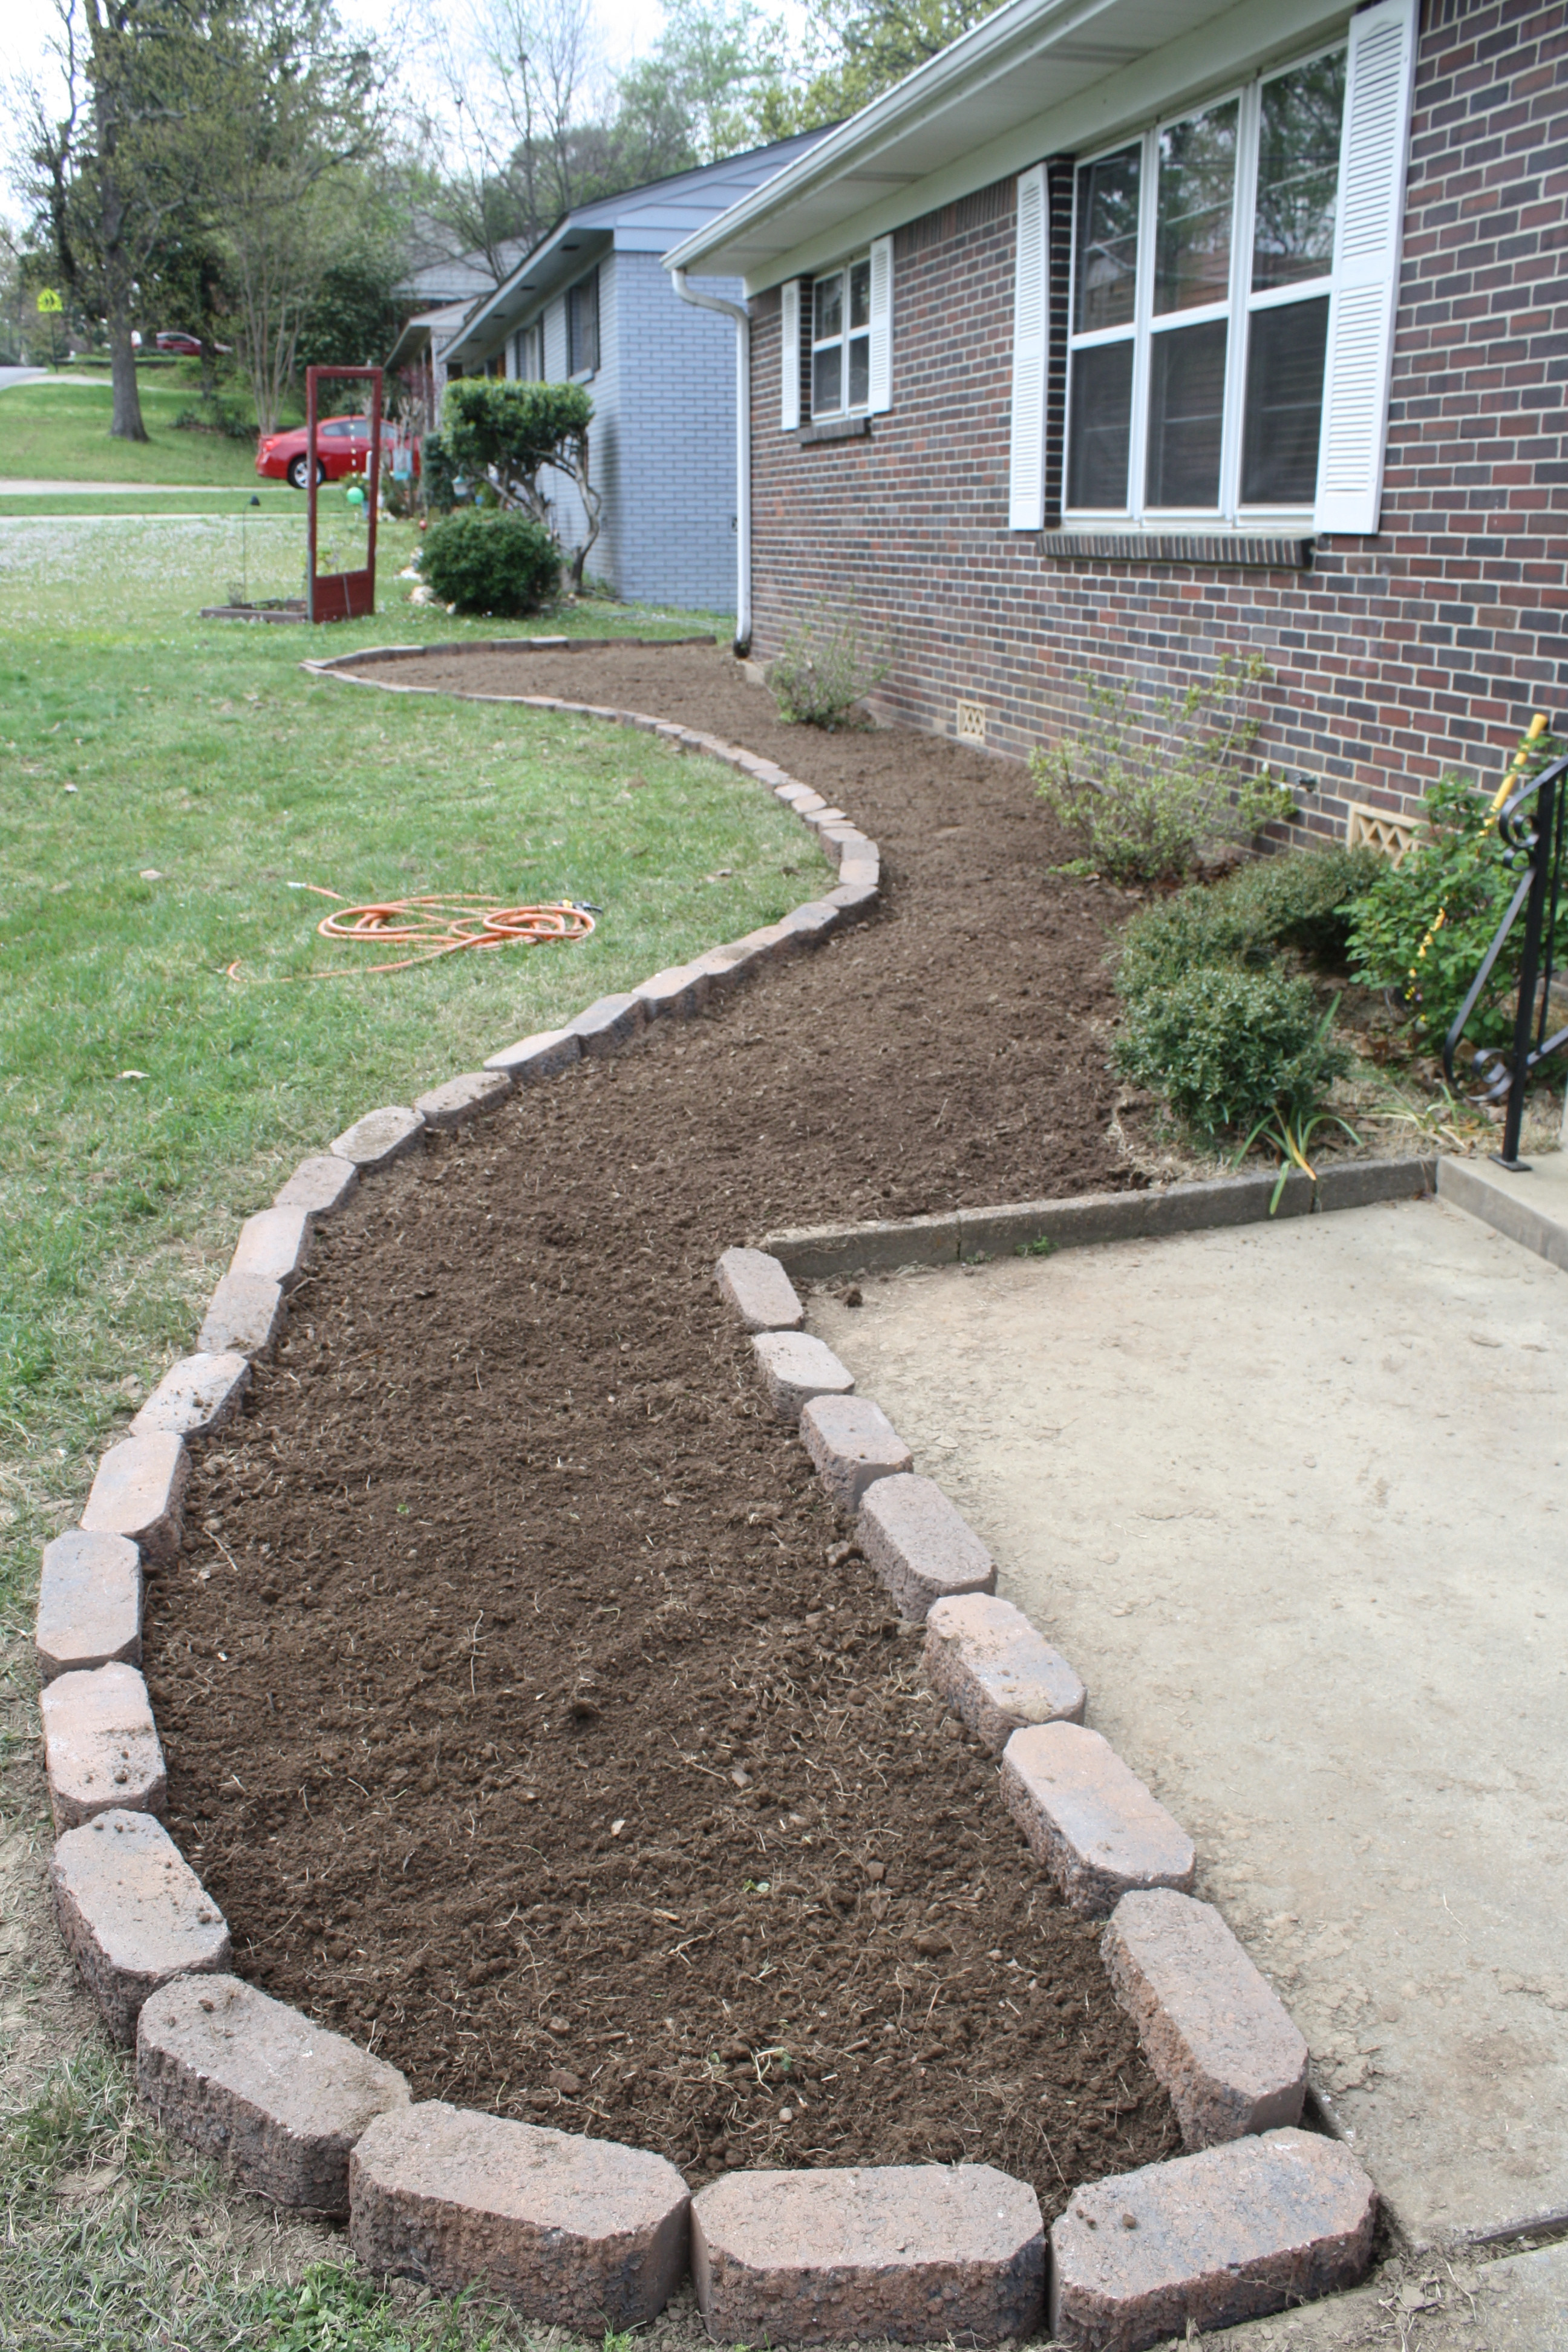 Best ideas about DIY Flower Bed Borders . Save or Pin Manscaping Phase 1 A Guest Post from Aaron Now.